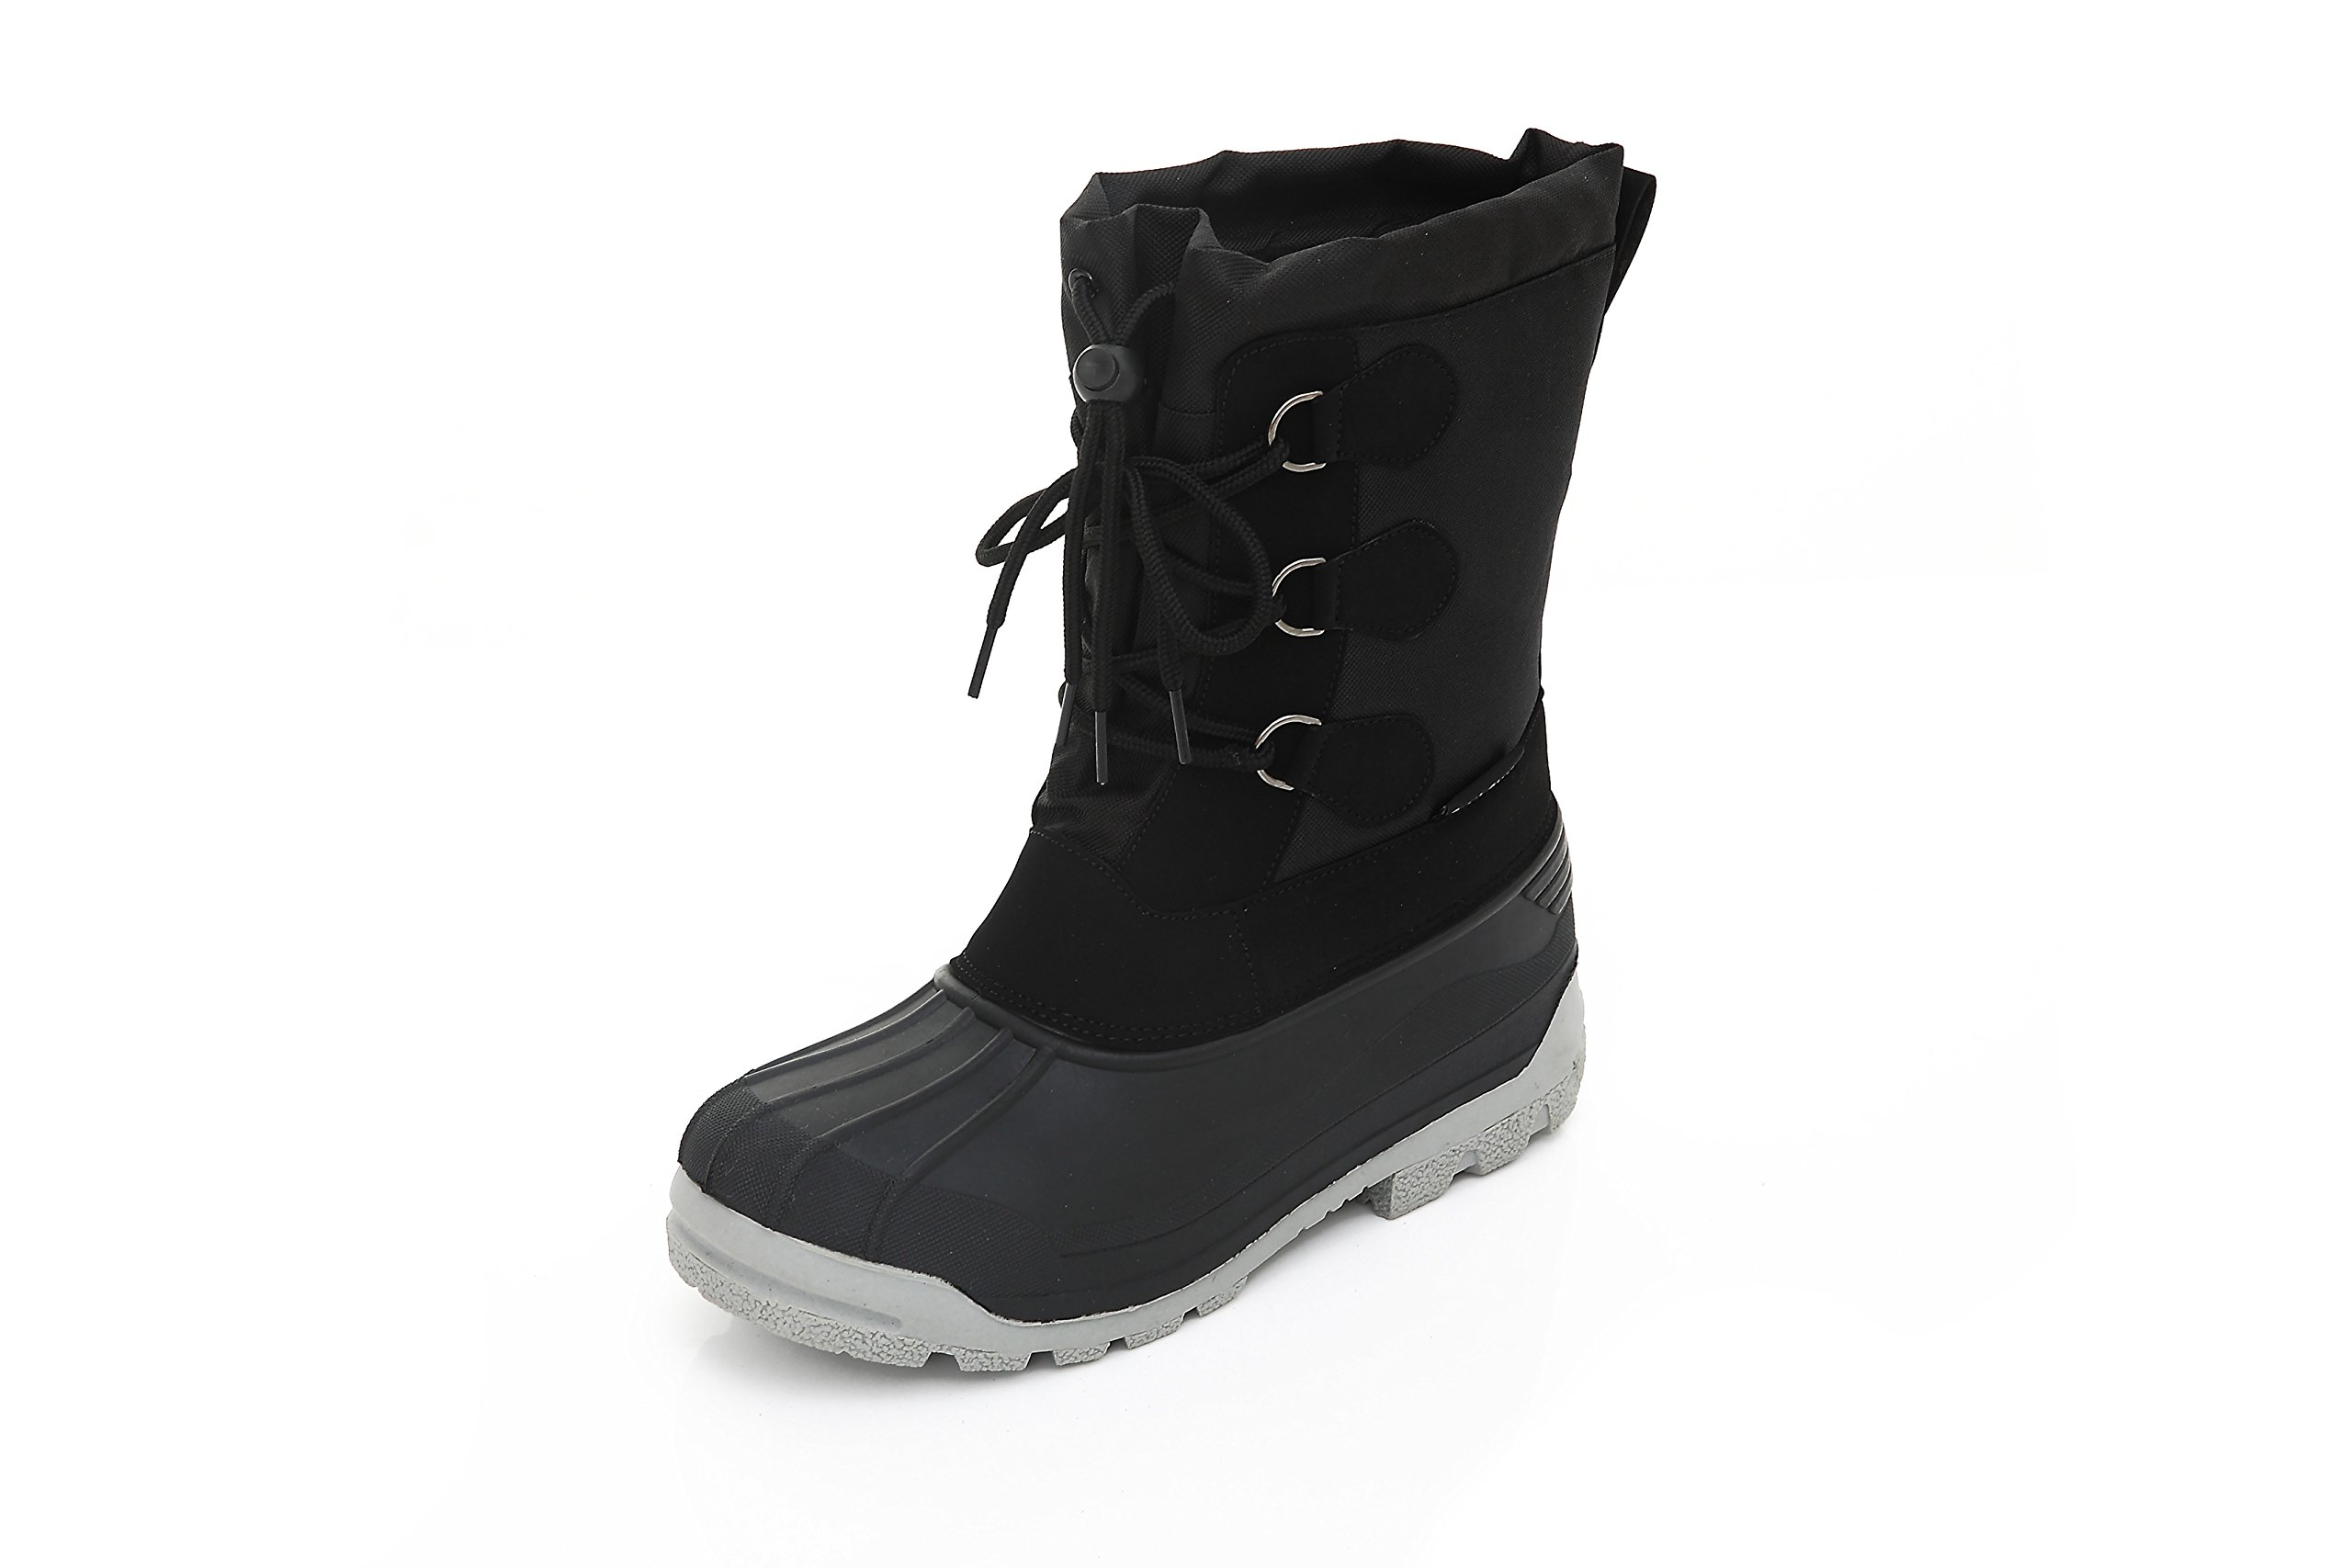 Womens Short Winter Boots Booties - Lace-Up Closure Comfortable Weatherproof Snow Boots